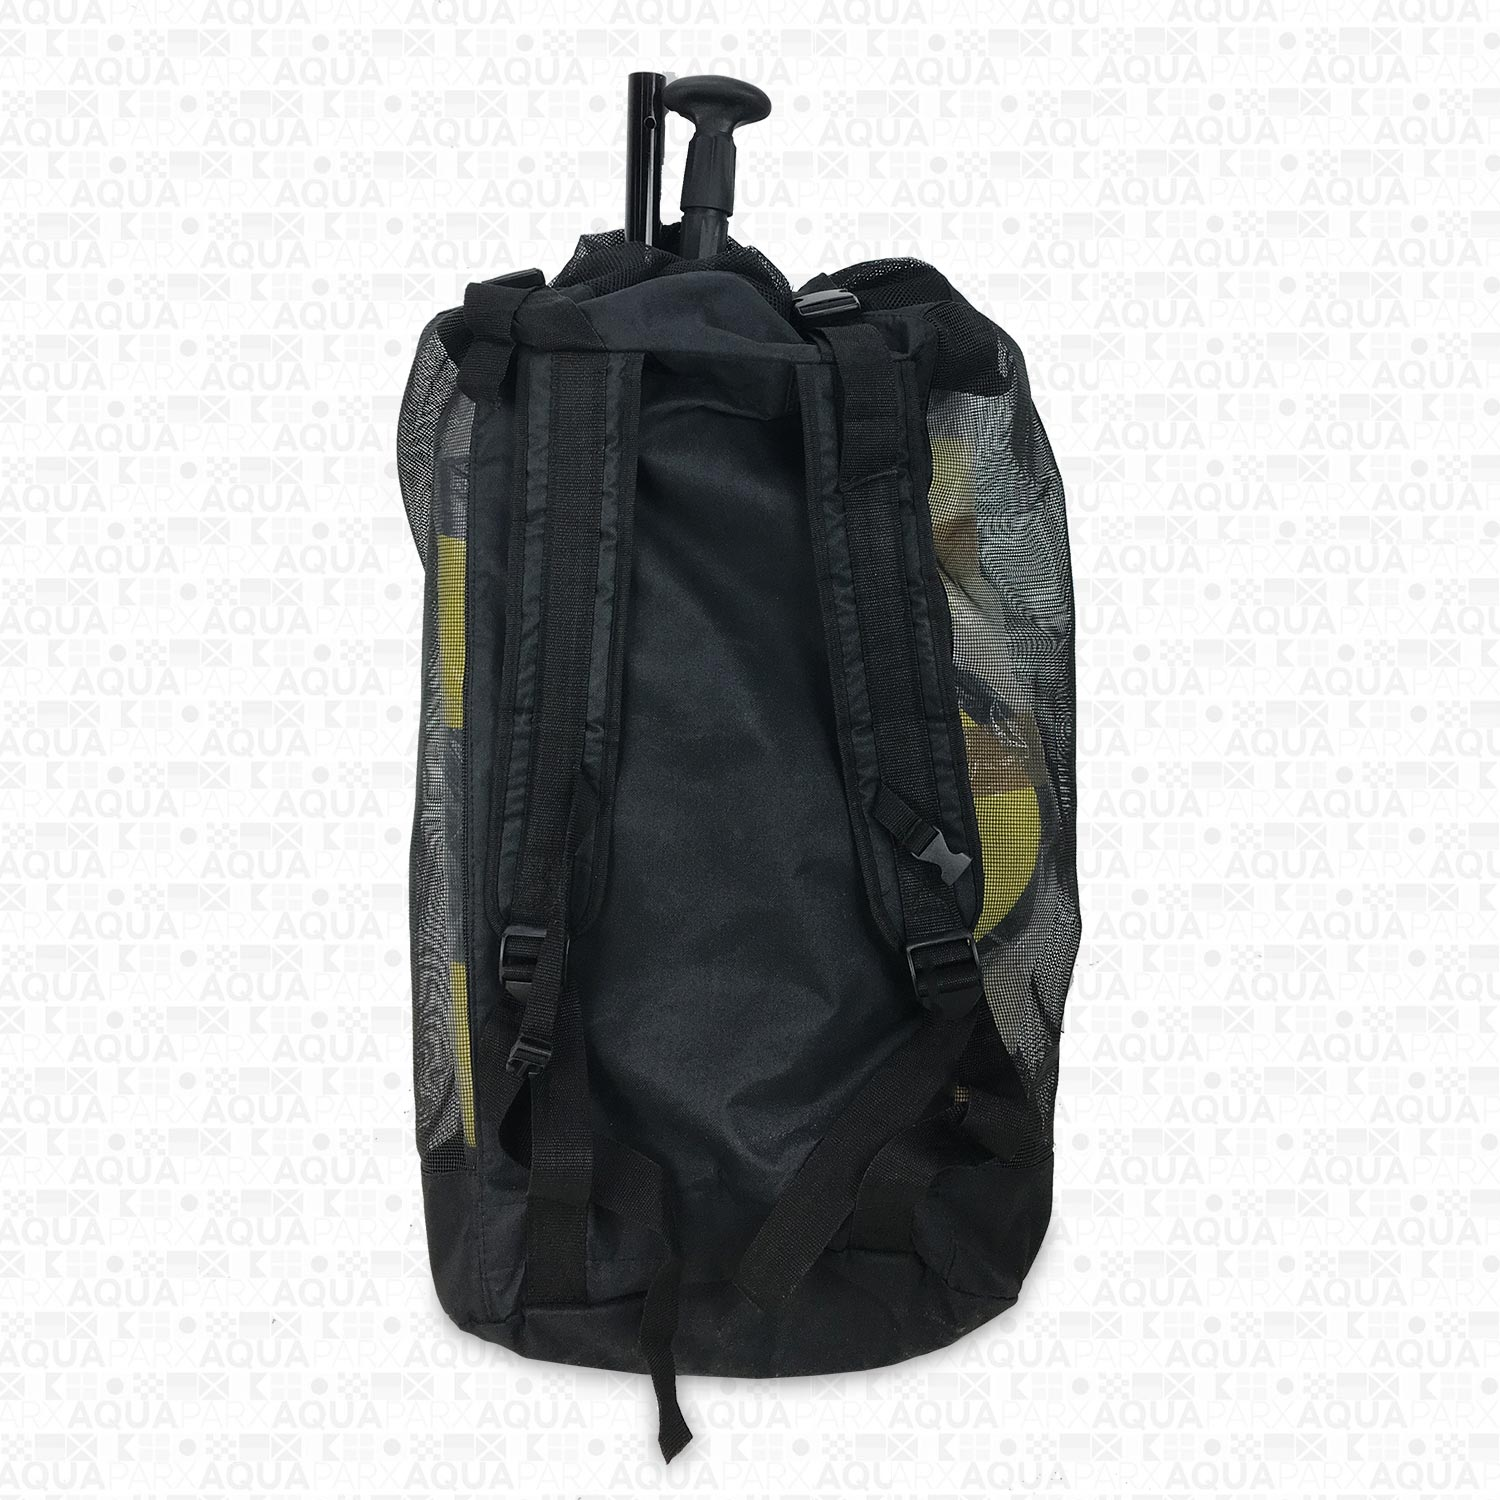 SUP Carry Bag